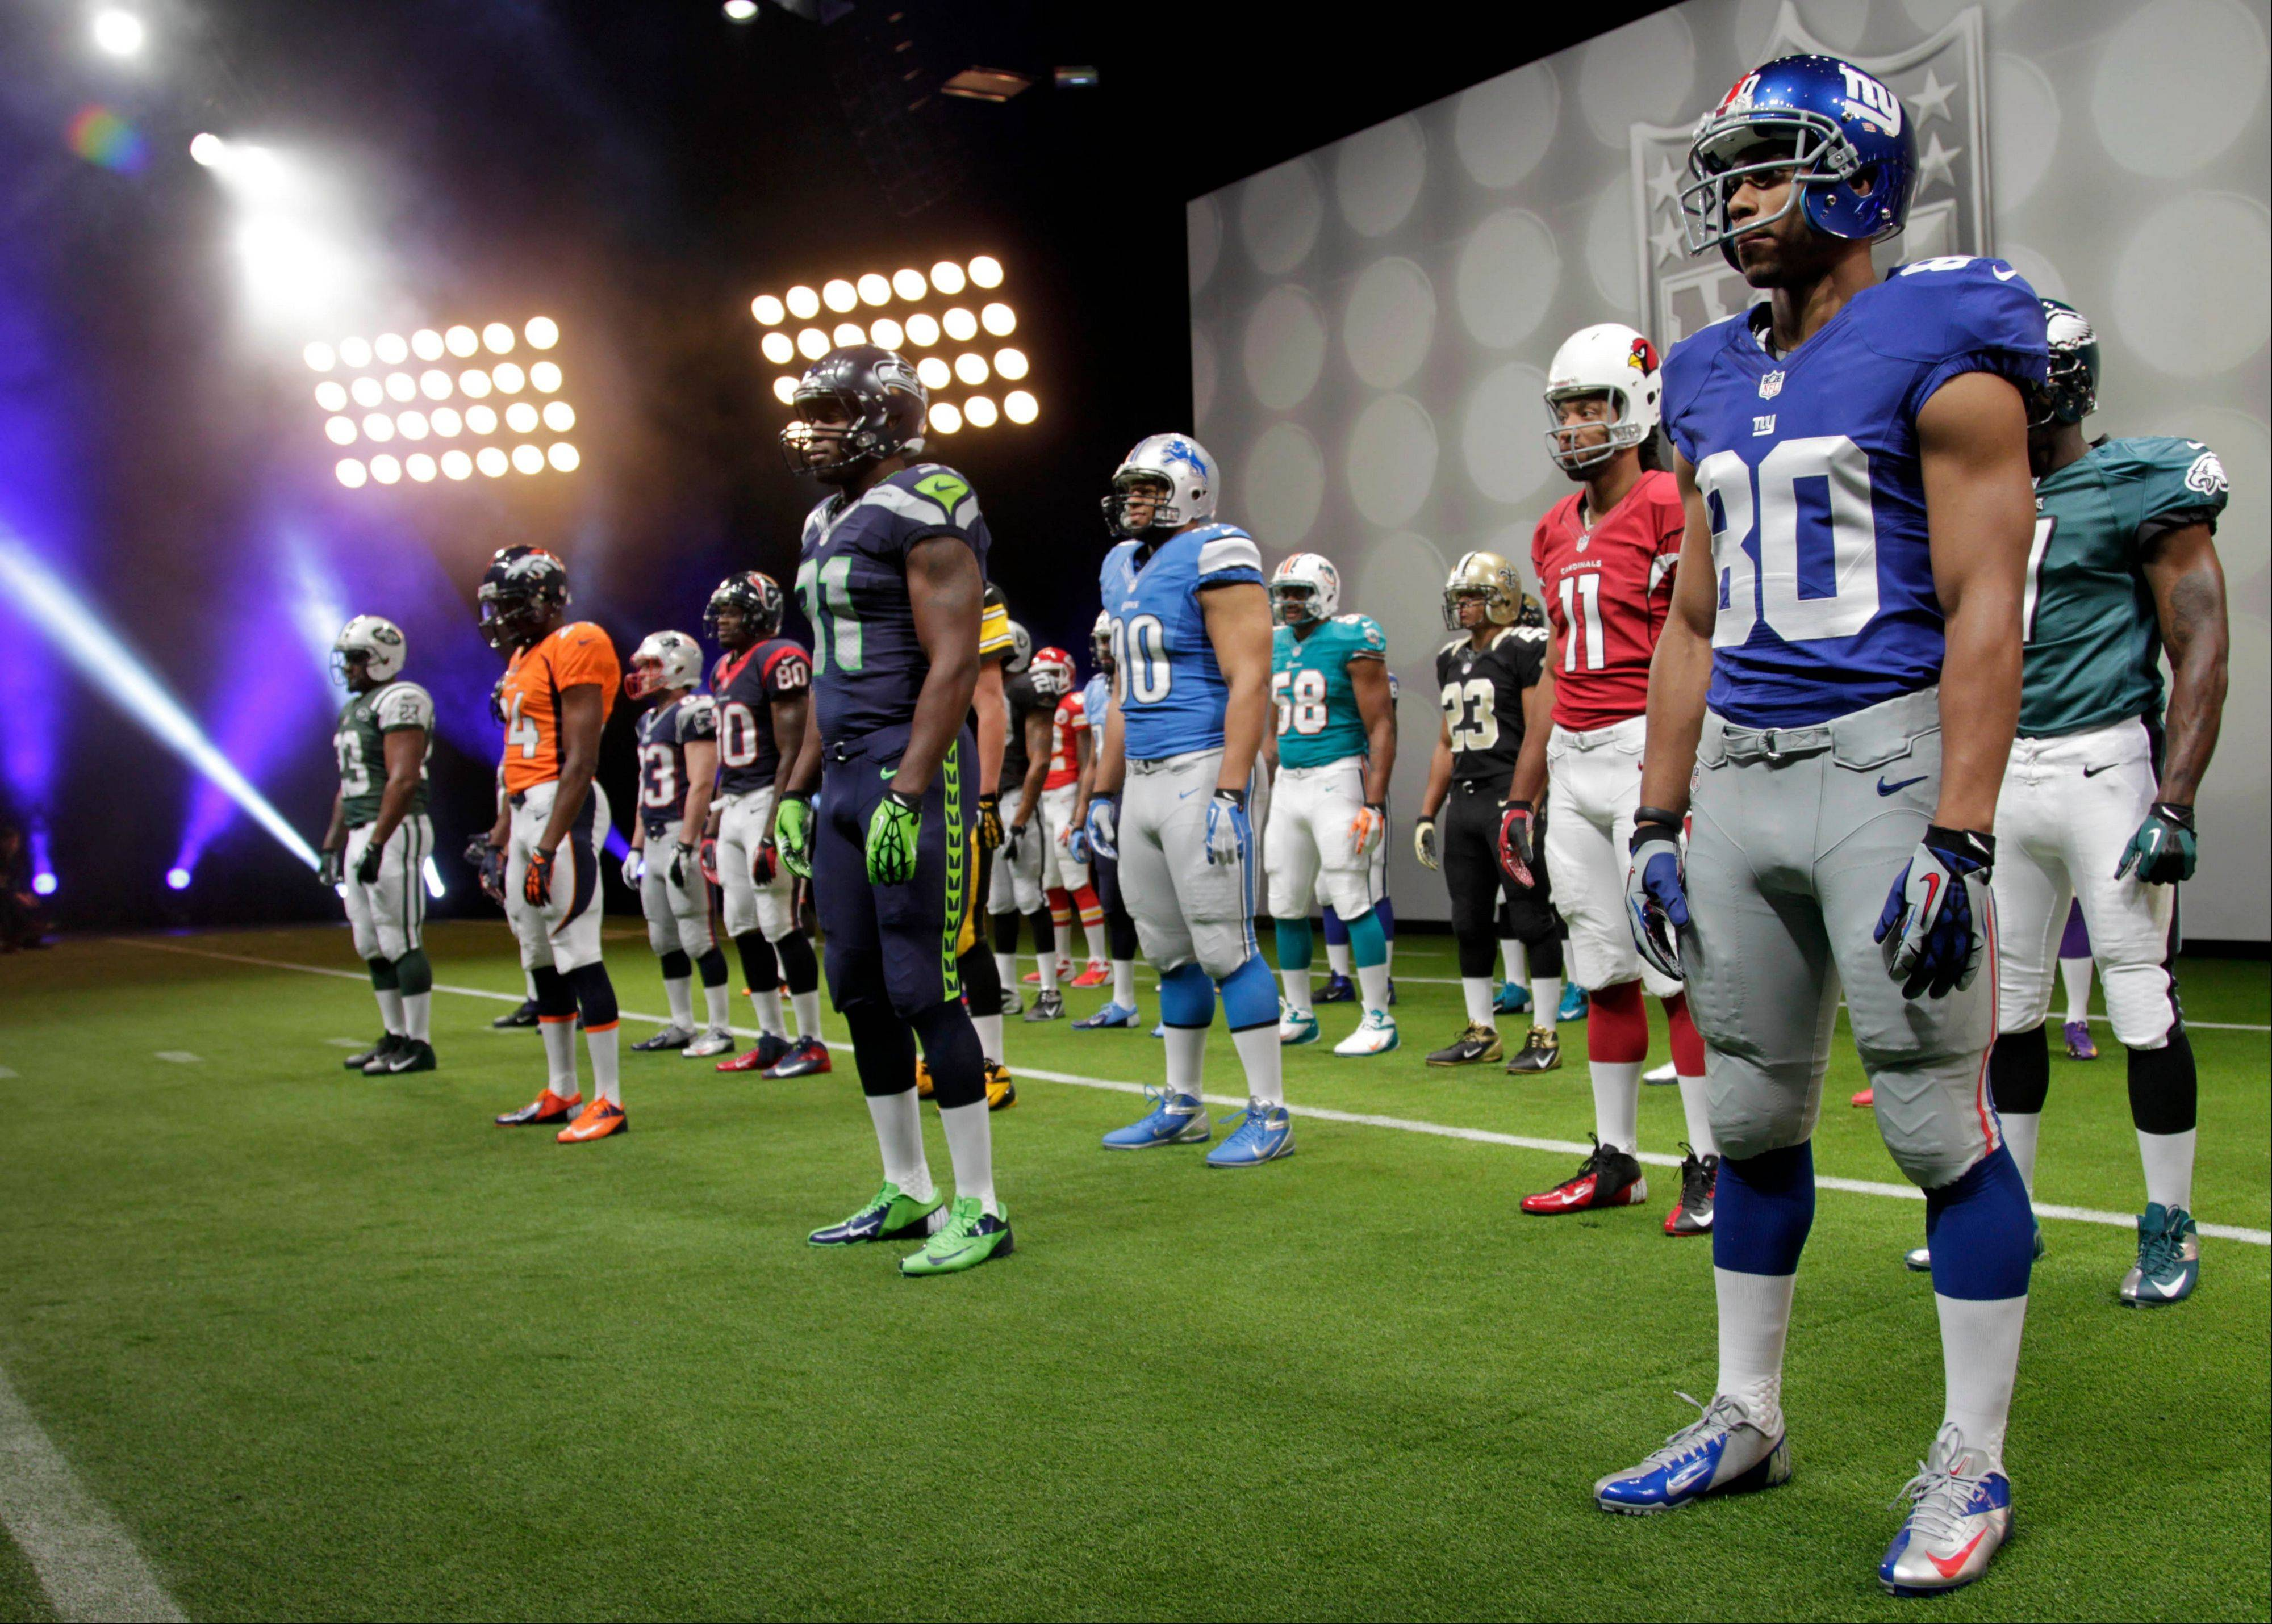 NFL uniforms are displayed during a presentation in New York, Tuesday, April 3, 2012. The league and Nike showed off the new look in grand style Tuesday with a gridiron-styled fashion show at a Brooklyn film studio.